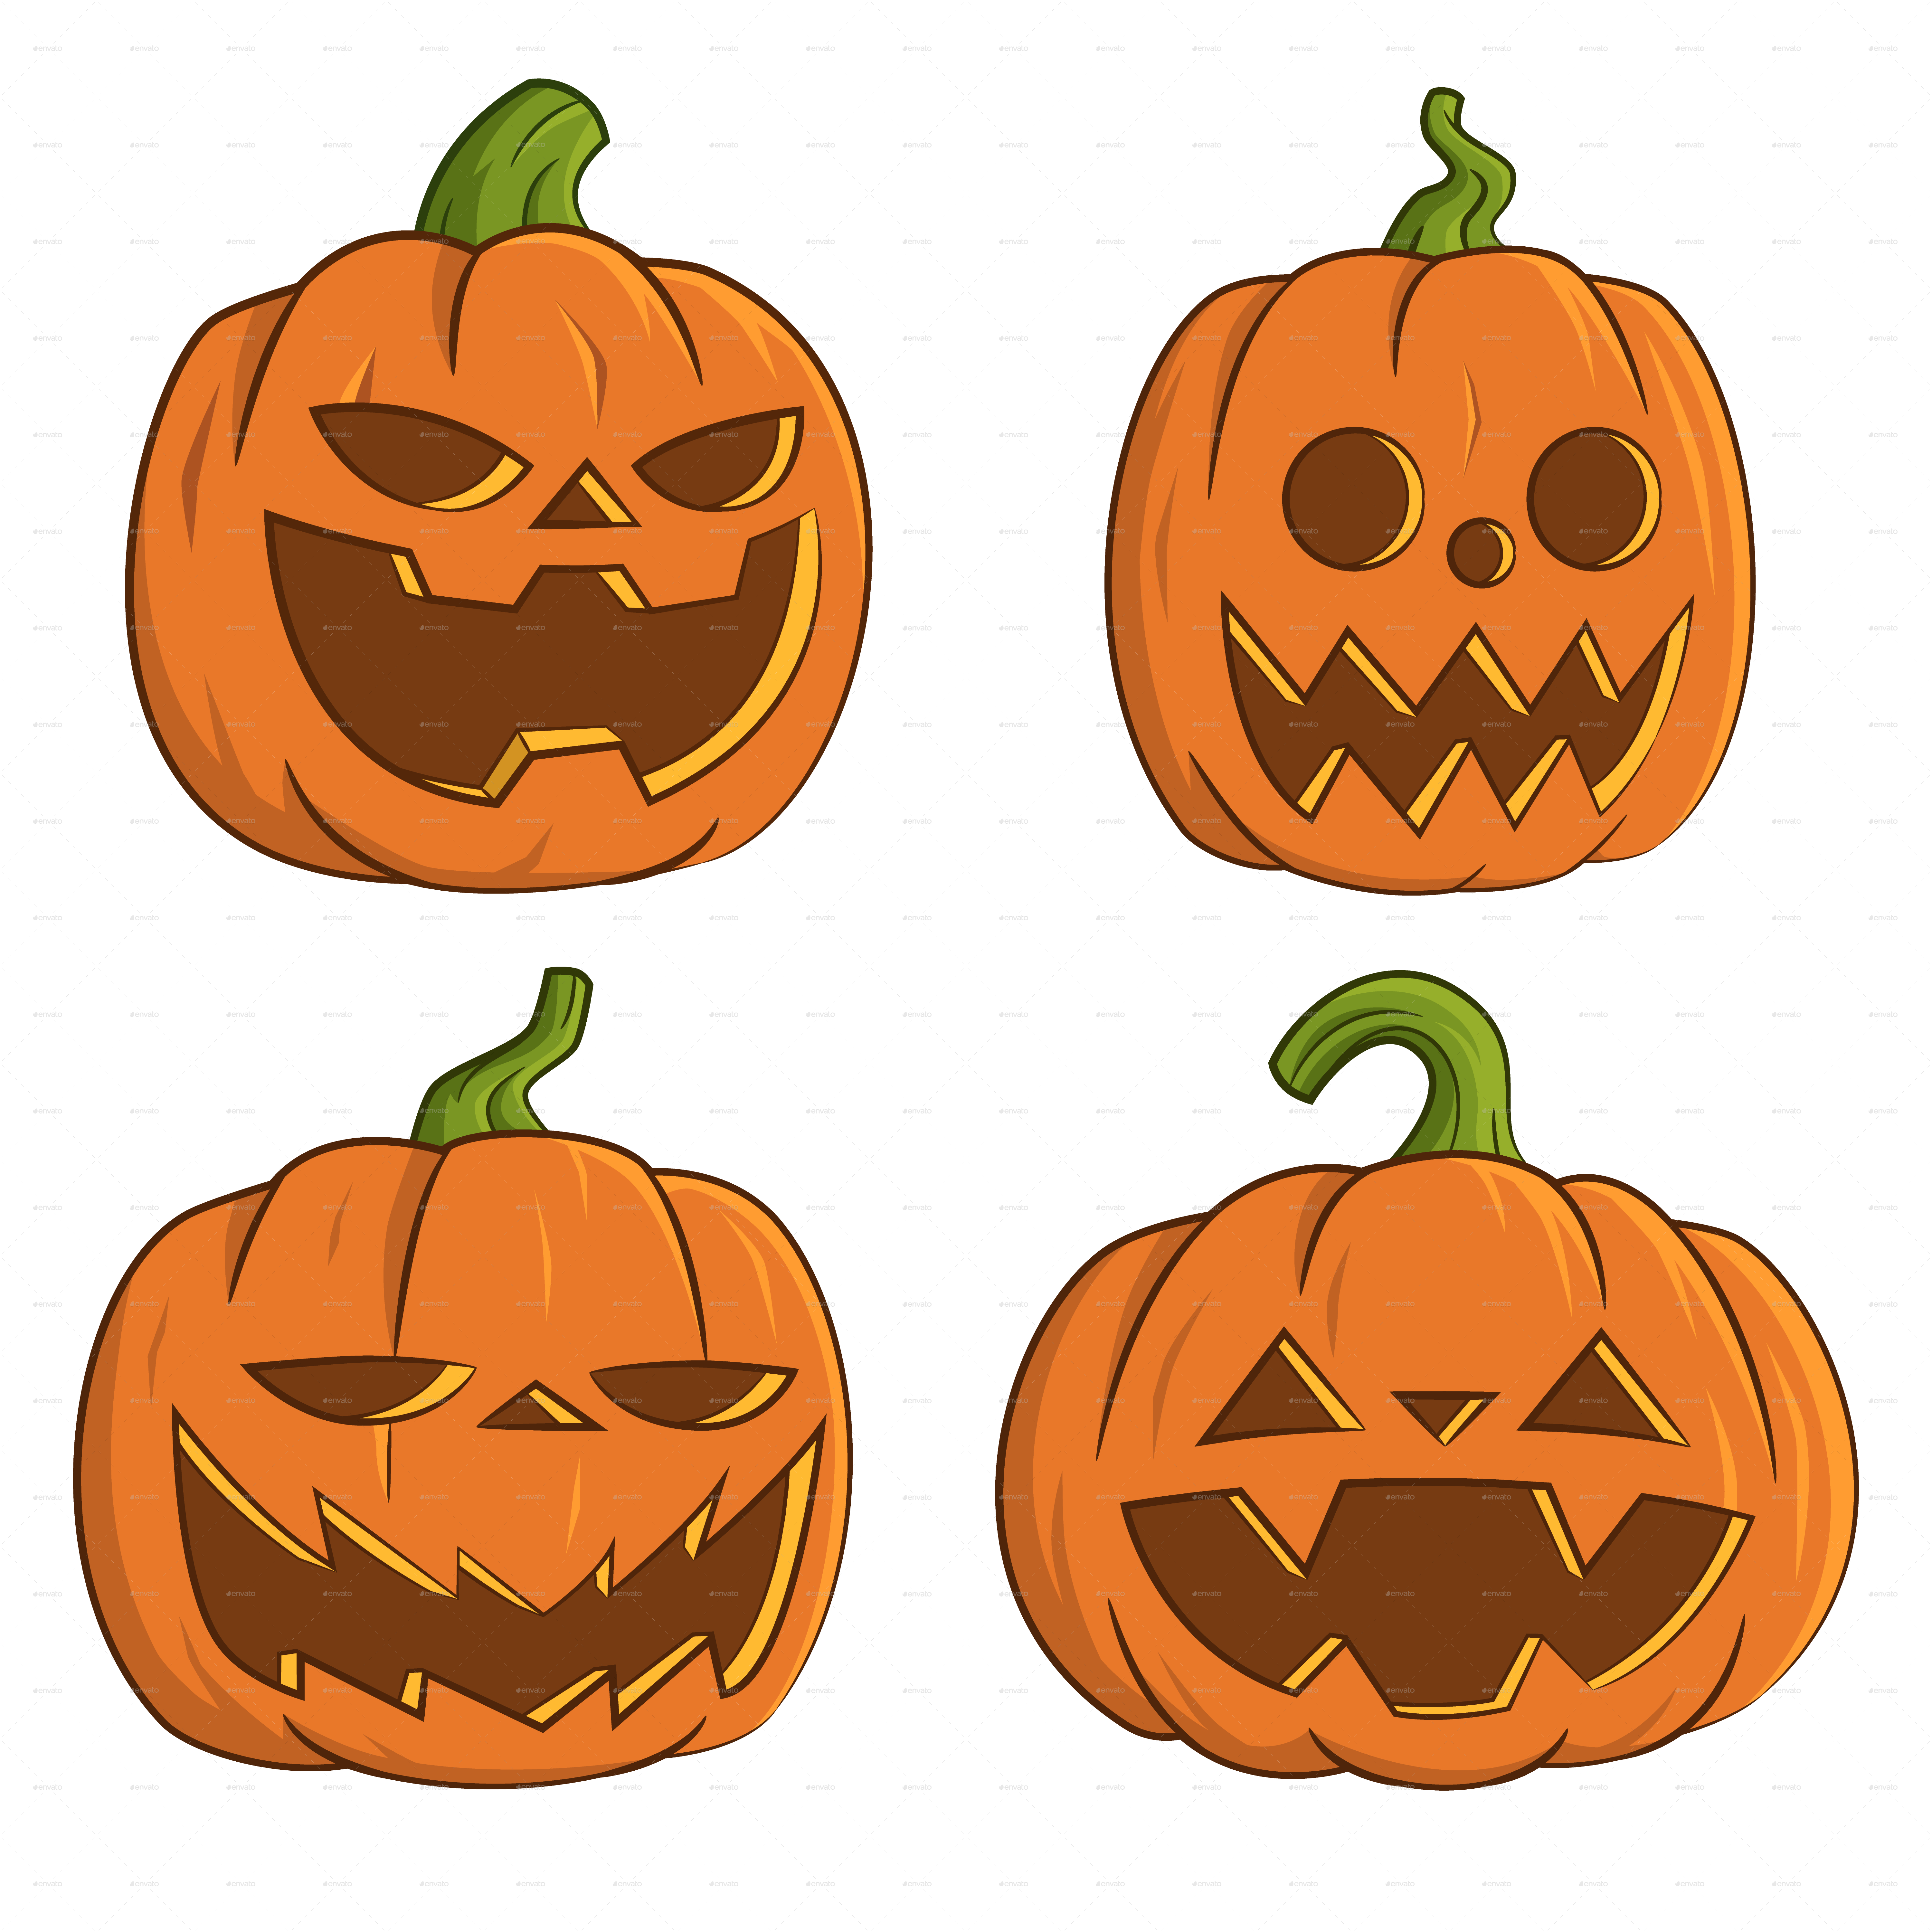 Pumpkin png clipart for photoshop png stock Pumpkins for Halloween by Gatts | GraphicRiver png stock